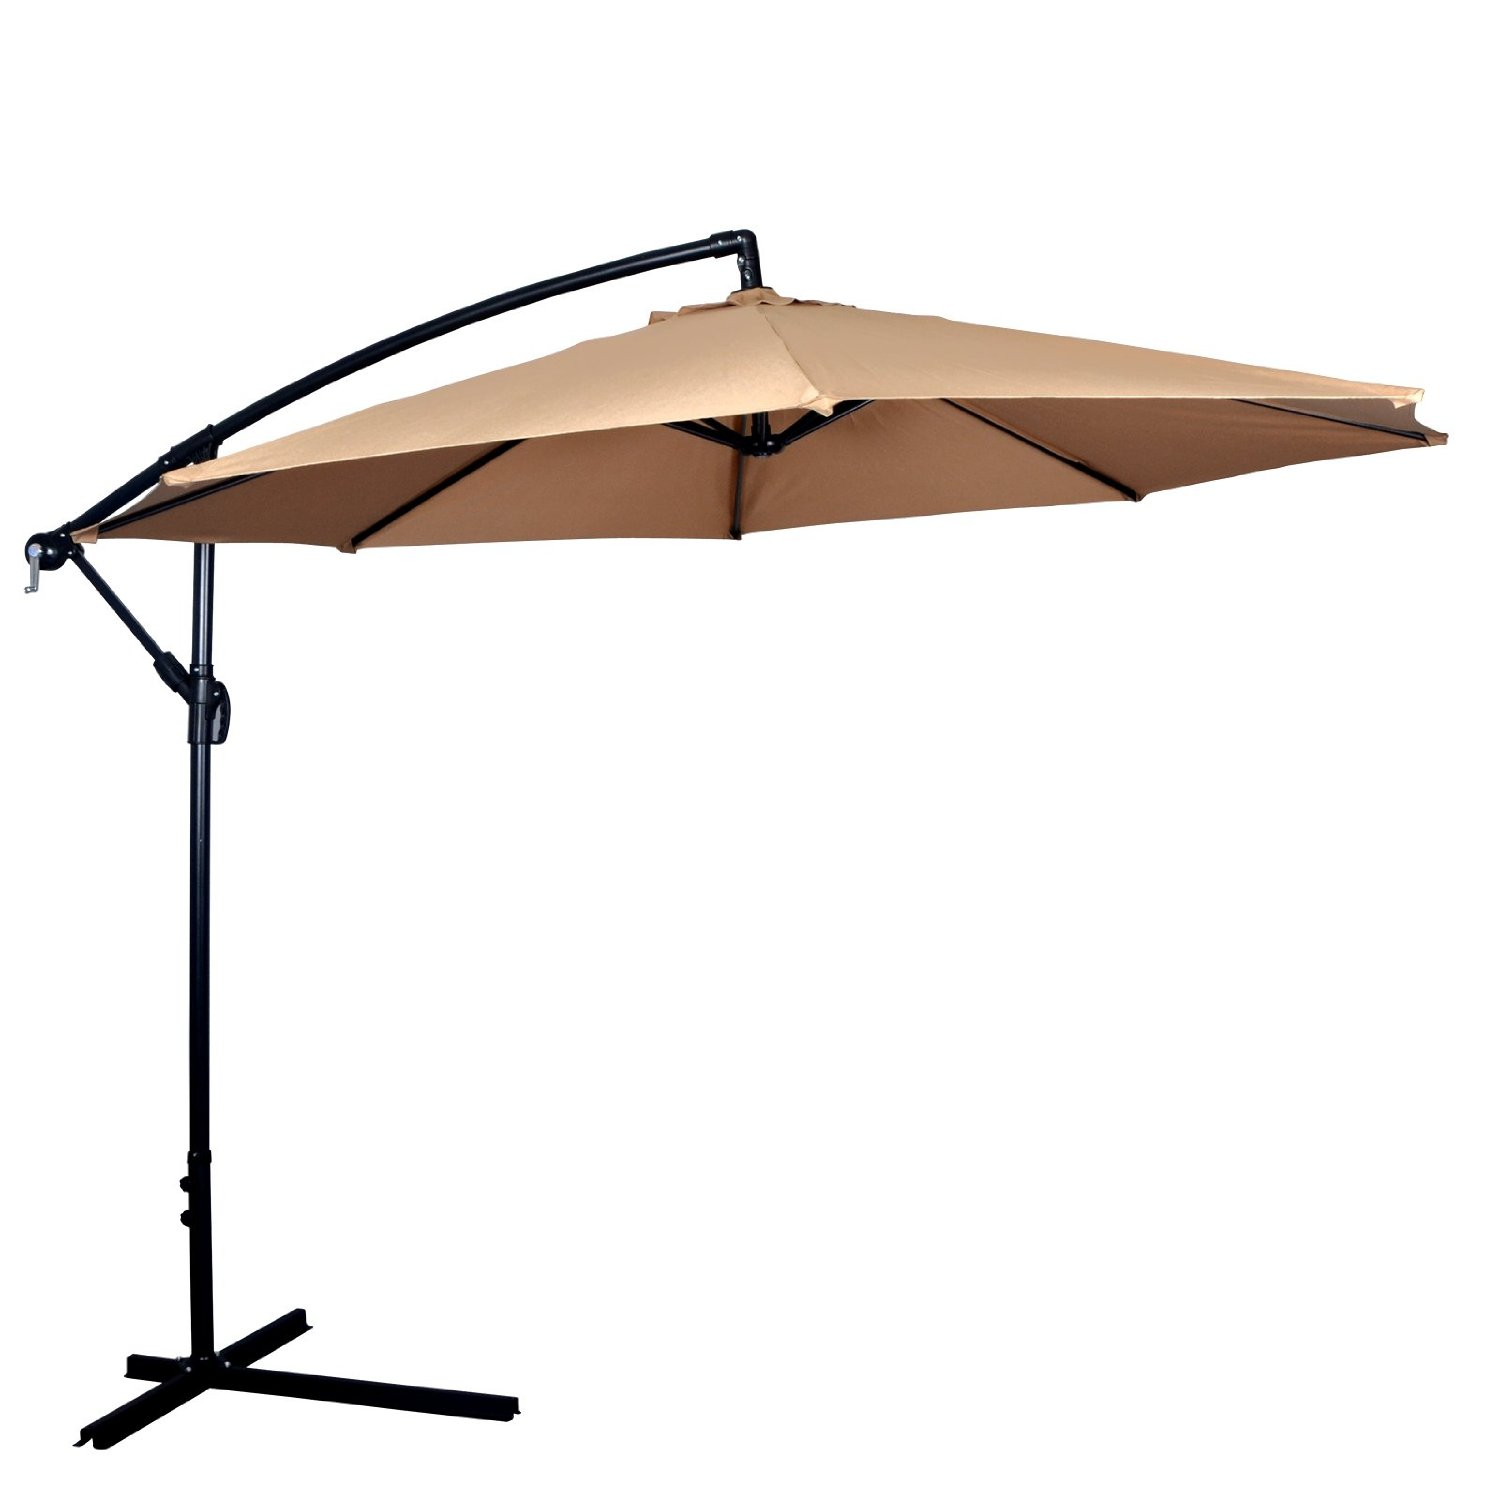 Top 10 best offset umbrella reviews perfect 2018 guide for Best outdoor umbrellas reviews